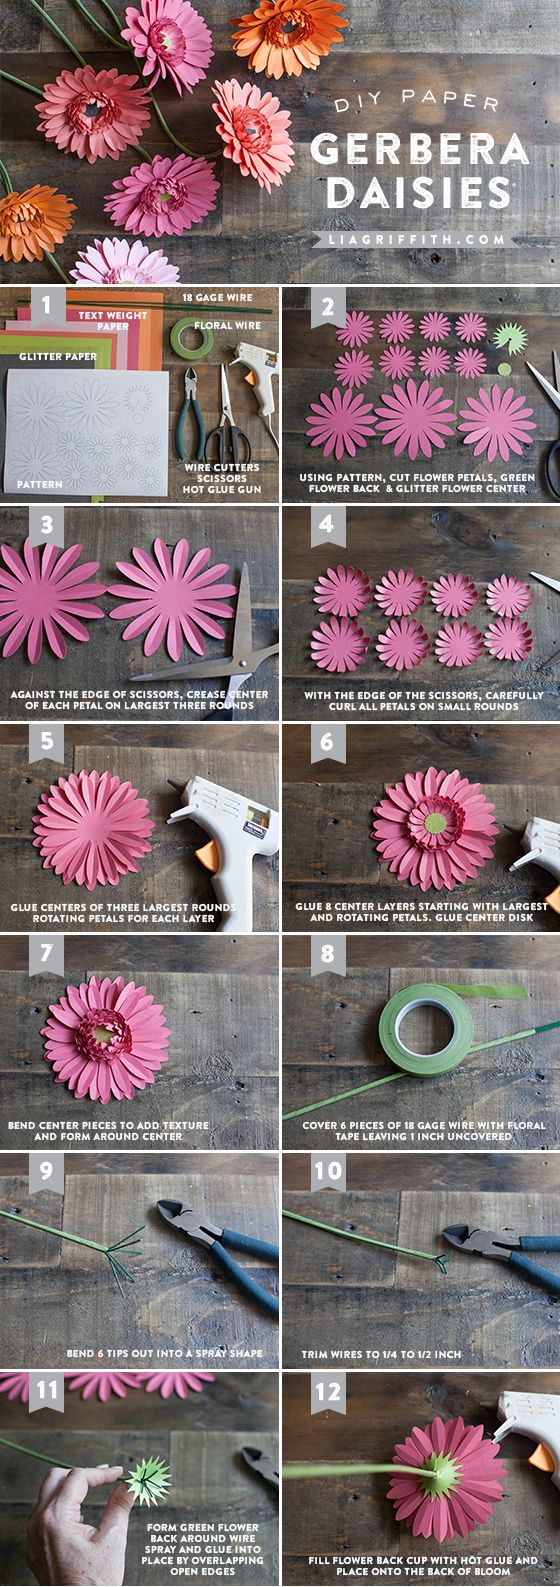 17 Best Images About Paper Flowers On Pinterest Fabric Flowers